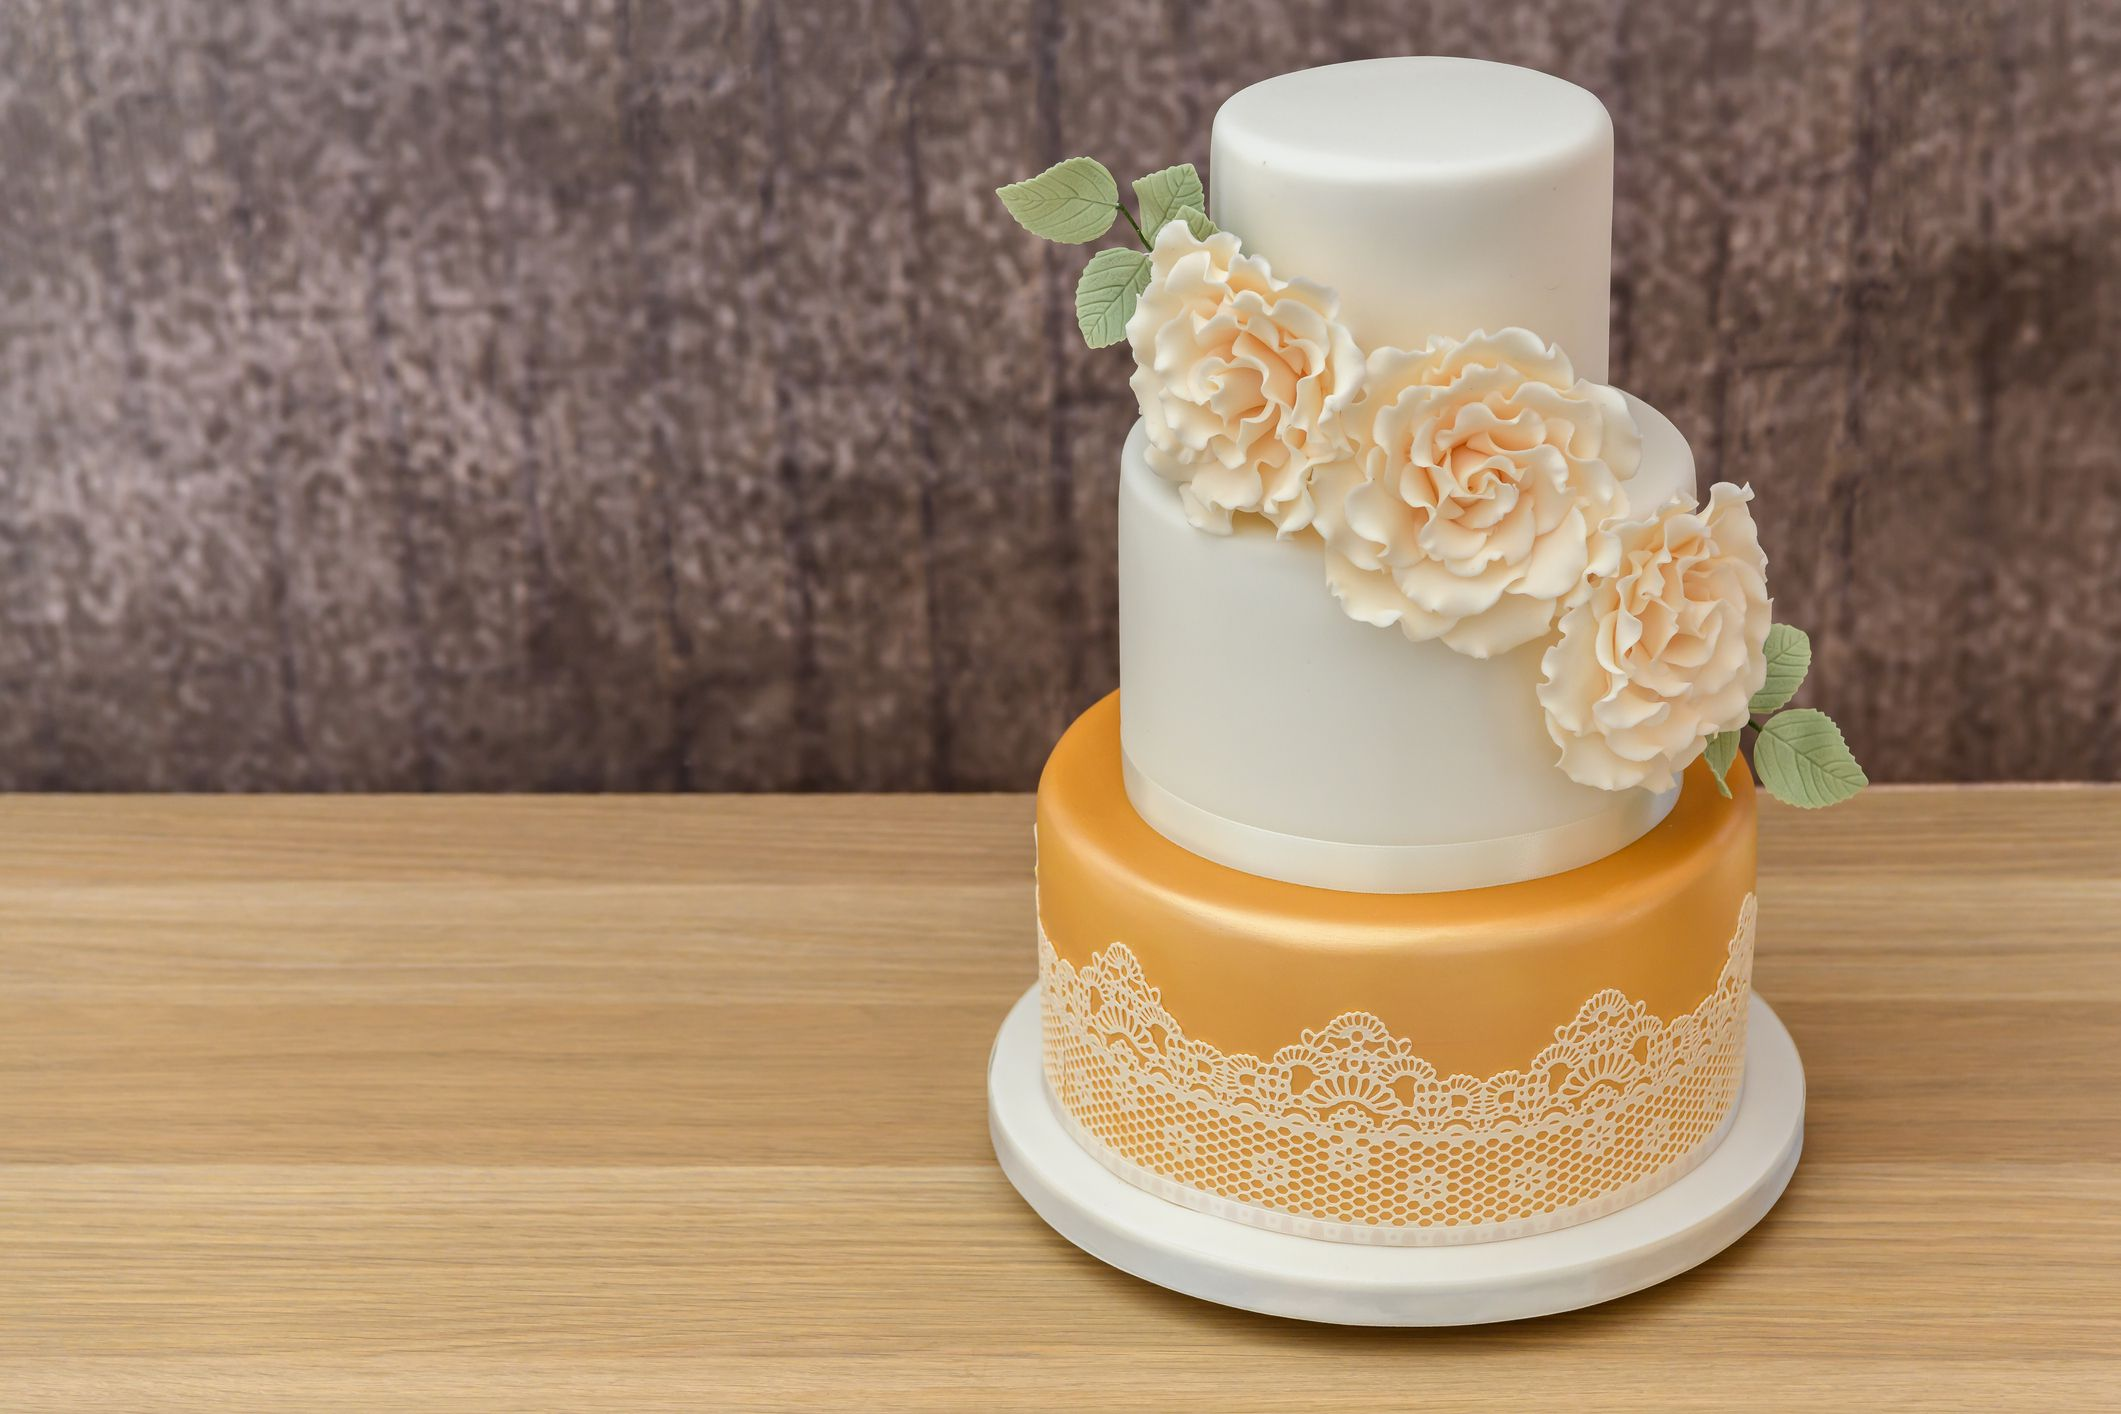 How To Bake And Decorate A 3 Tier Wedding Cake